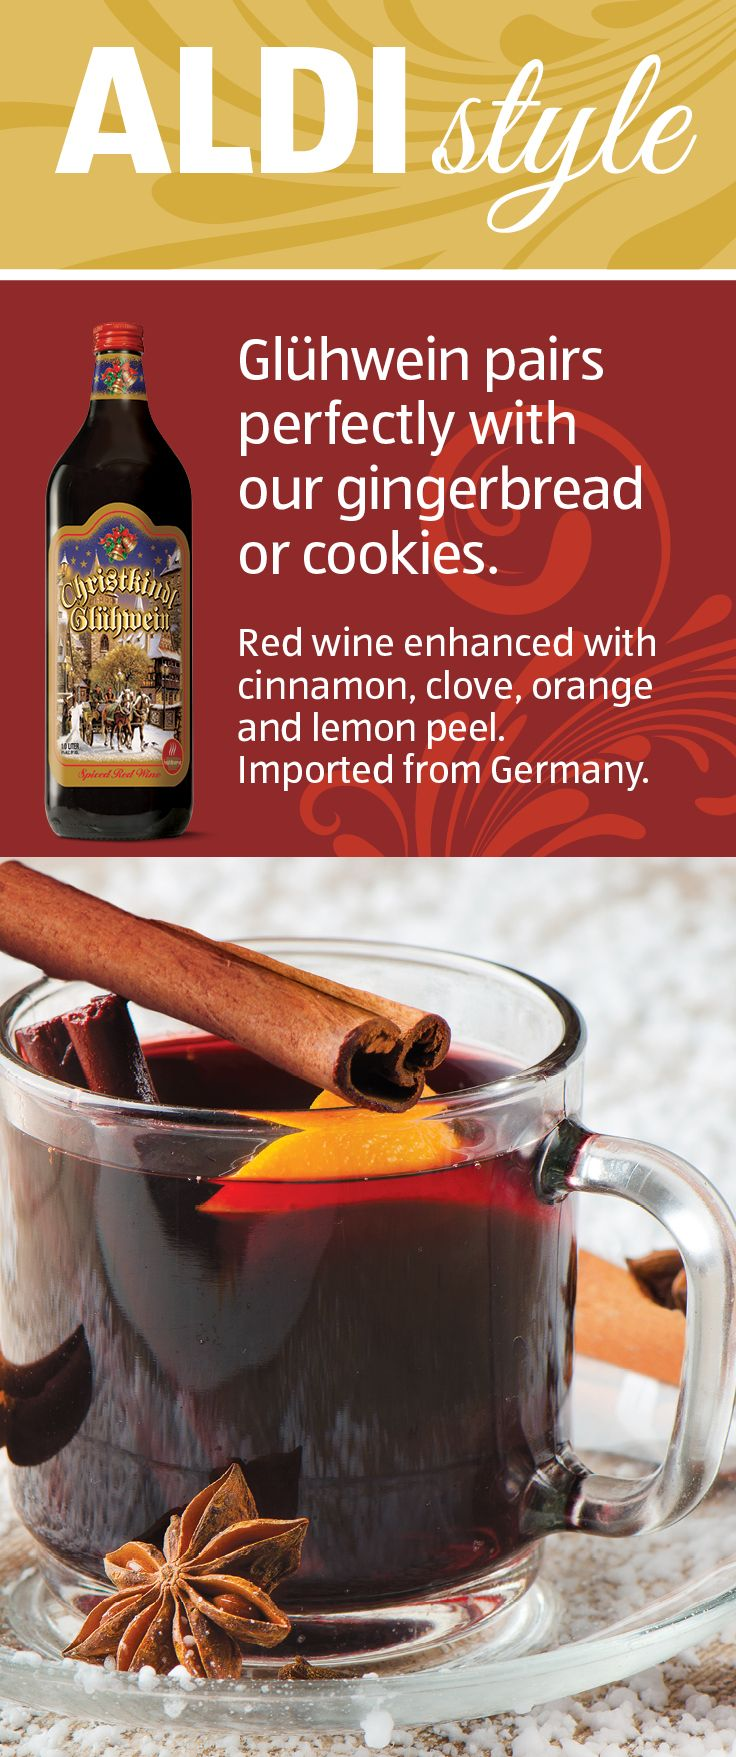 For A German Favorite That Pairs Perfectly With Gingerbread Cookies Give Gluhwein German Mulled Wine A Try Aldiholiday Food Aldi Recipes Wine Recipes